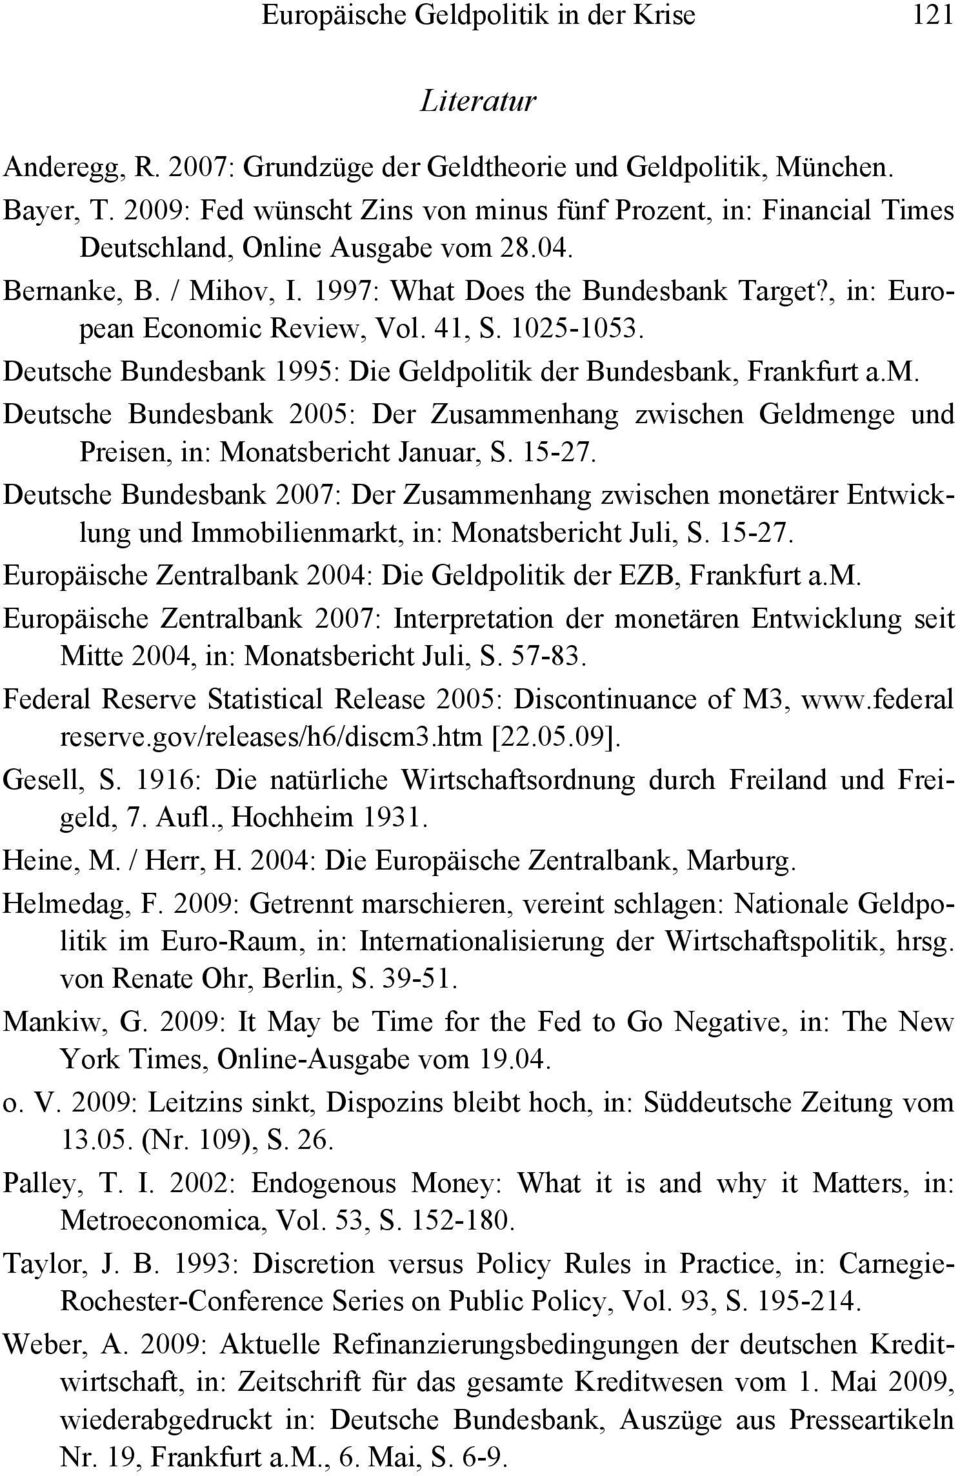 , in: European Economic Review, Vol. 41, S. 1025-1053. Deutsche Bundesbank 1995: Die Geldpolitik der Bundesbank, Frankfurt a.m. Deutsche Bundesbank 2005: Der Zusammenhang zwischen Geldmenge und Preisen, in: Monatsbericht Januar, S.